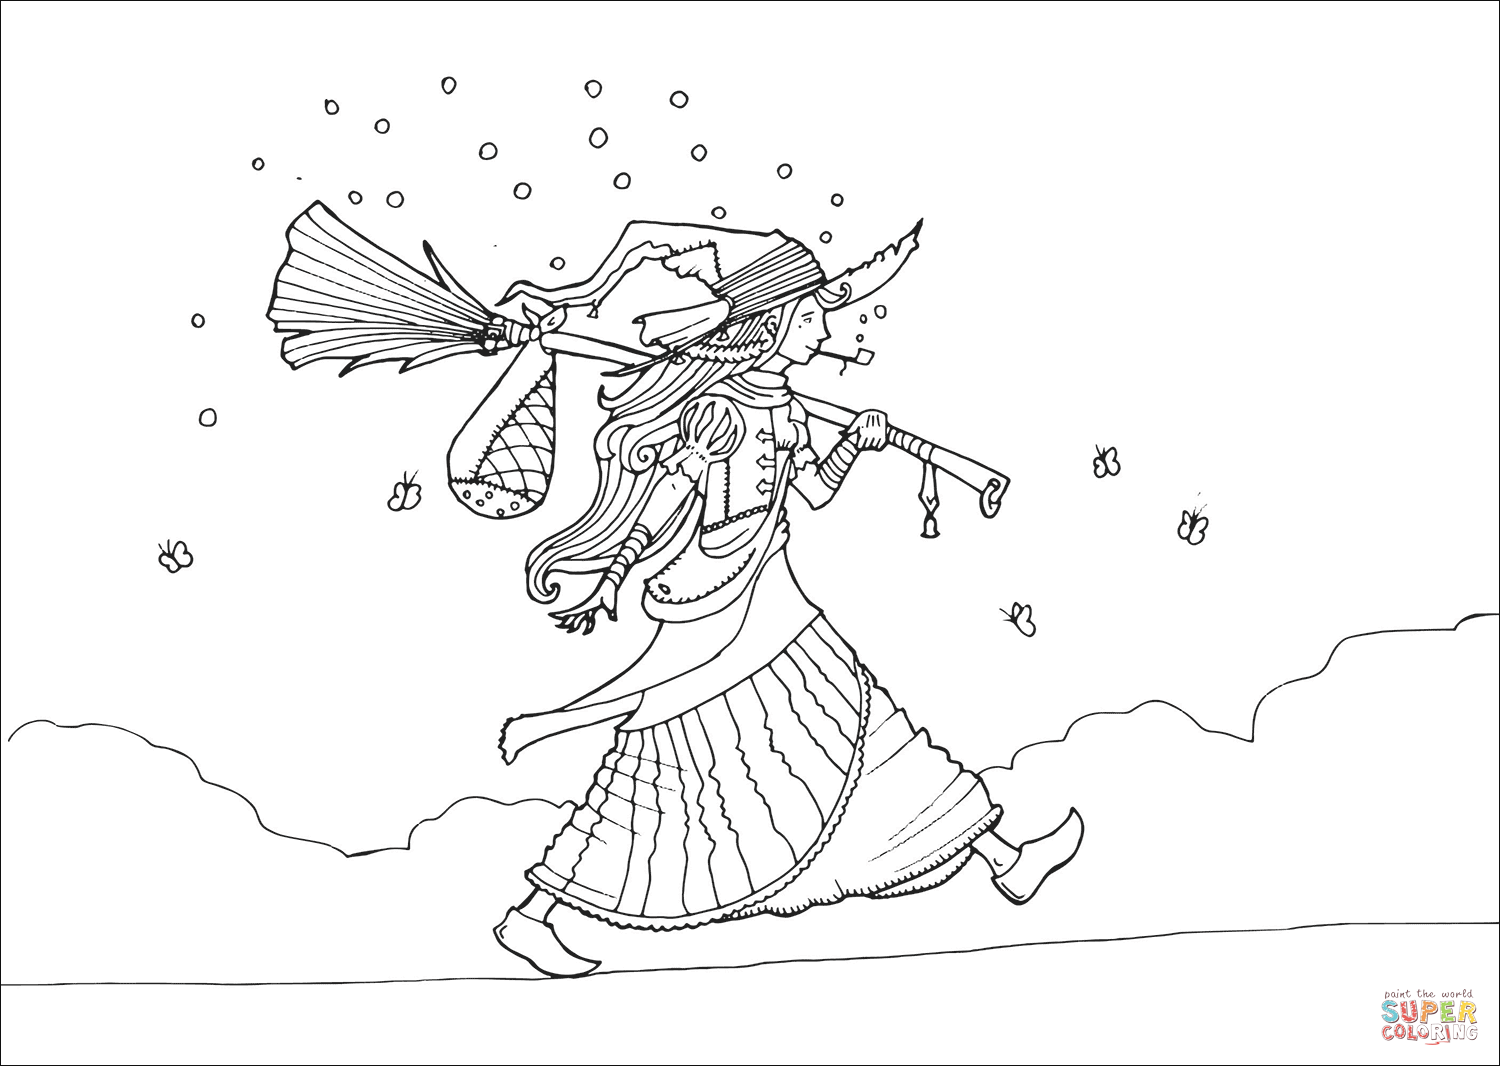 wicked witch of the west coloring pages vagabond witch coloring page free printable coloring pages west witch pages wicked coloring the of